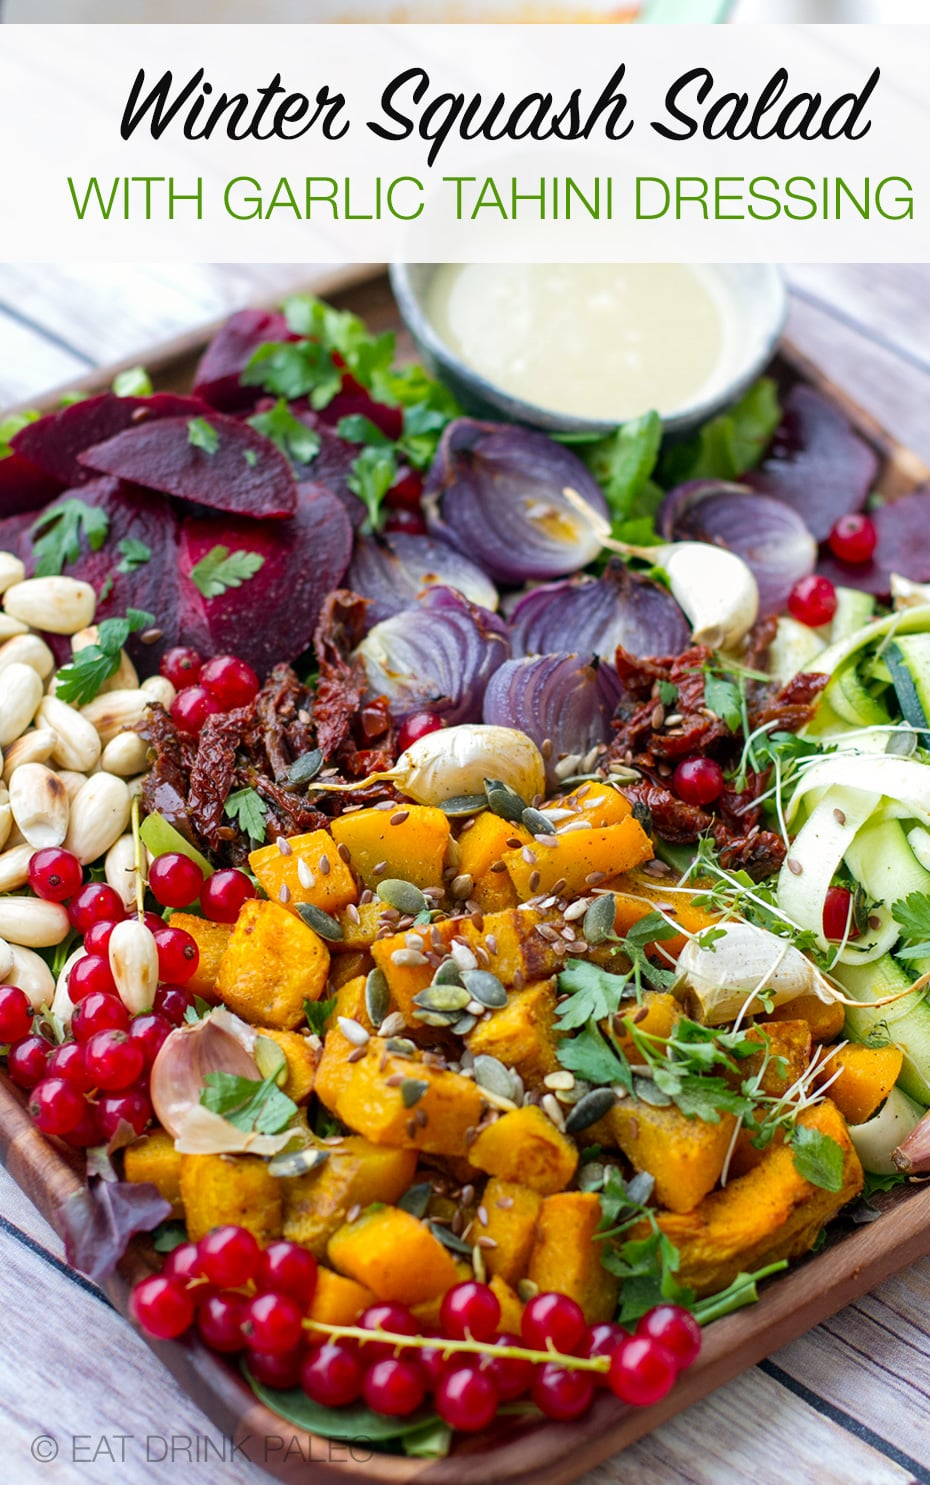 Fabulous fall salad with roasted kabocha winter squash, zucchini, beets, and tahini garlic dressing (Paleo, Gluten-Free, Grain-Free)